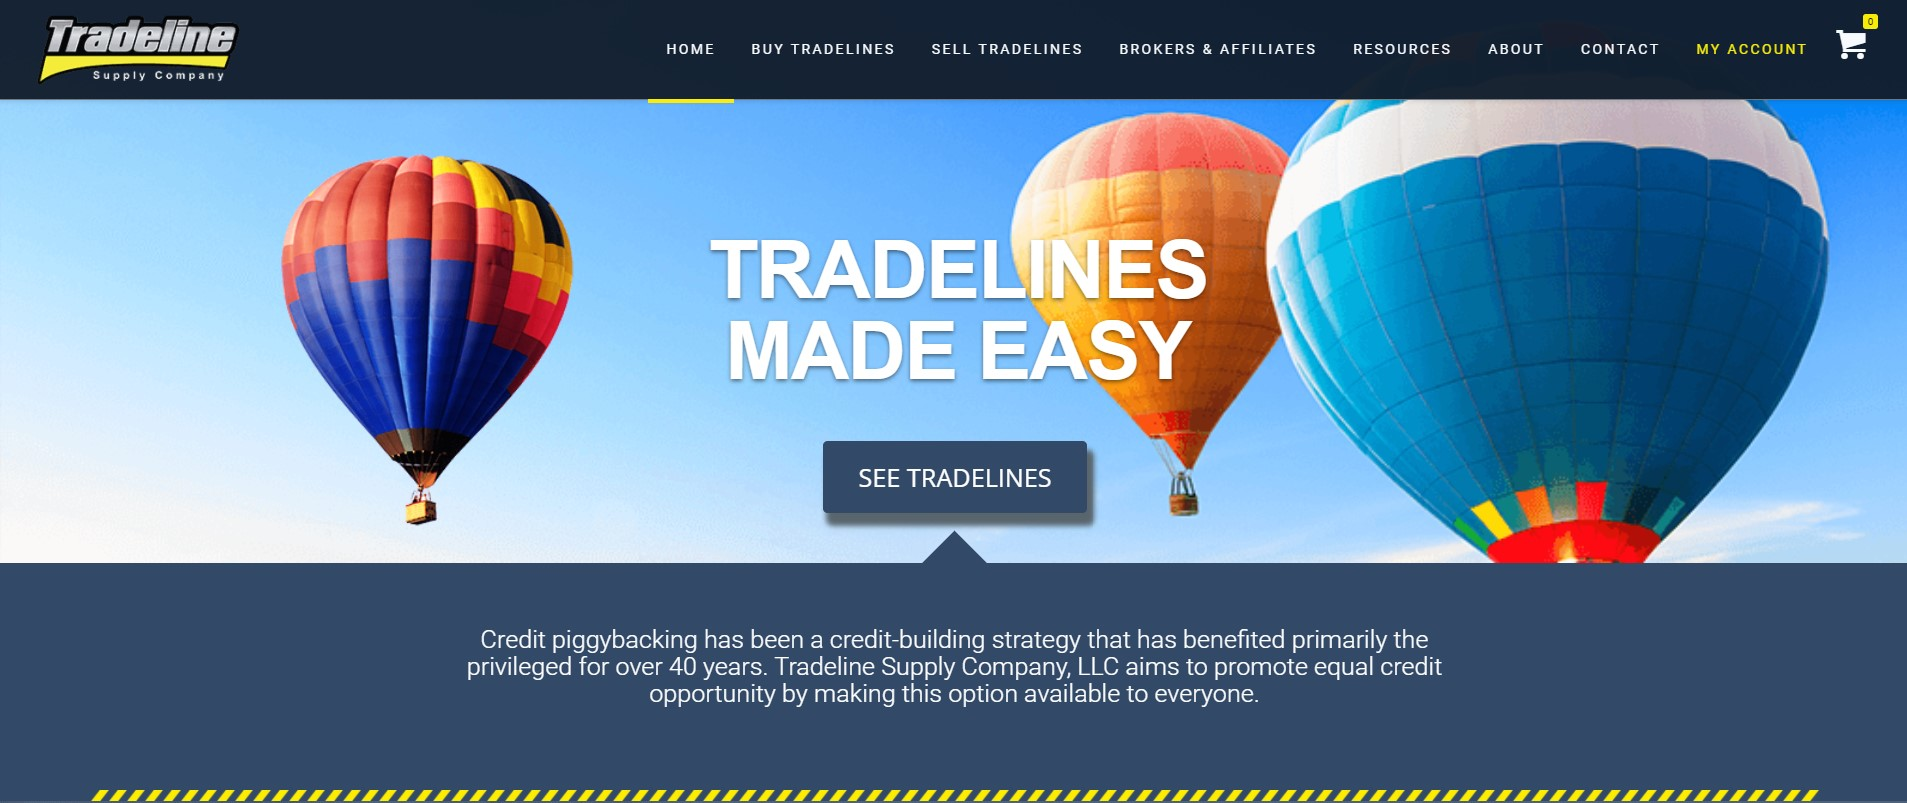 Tradeline Supply Company home page